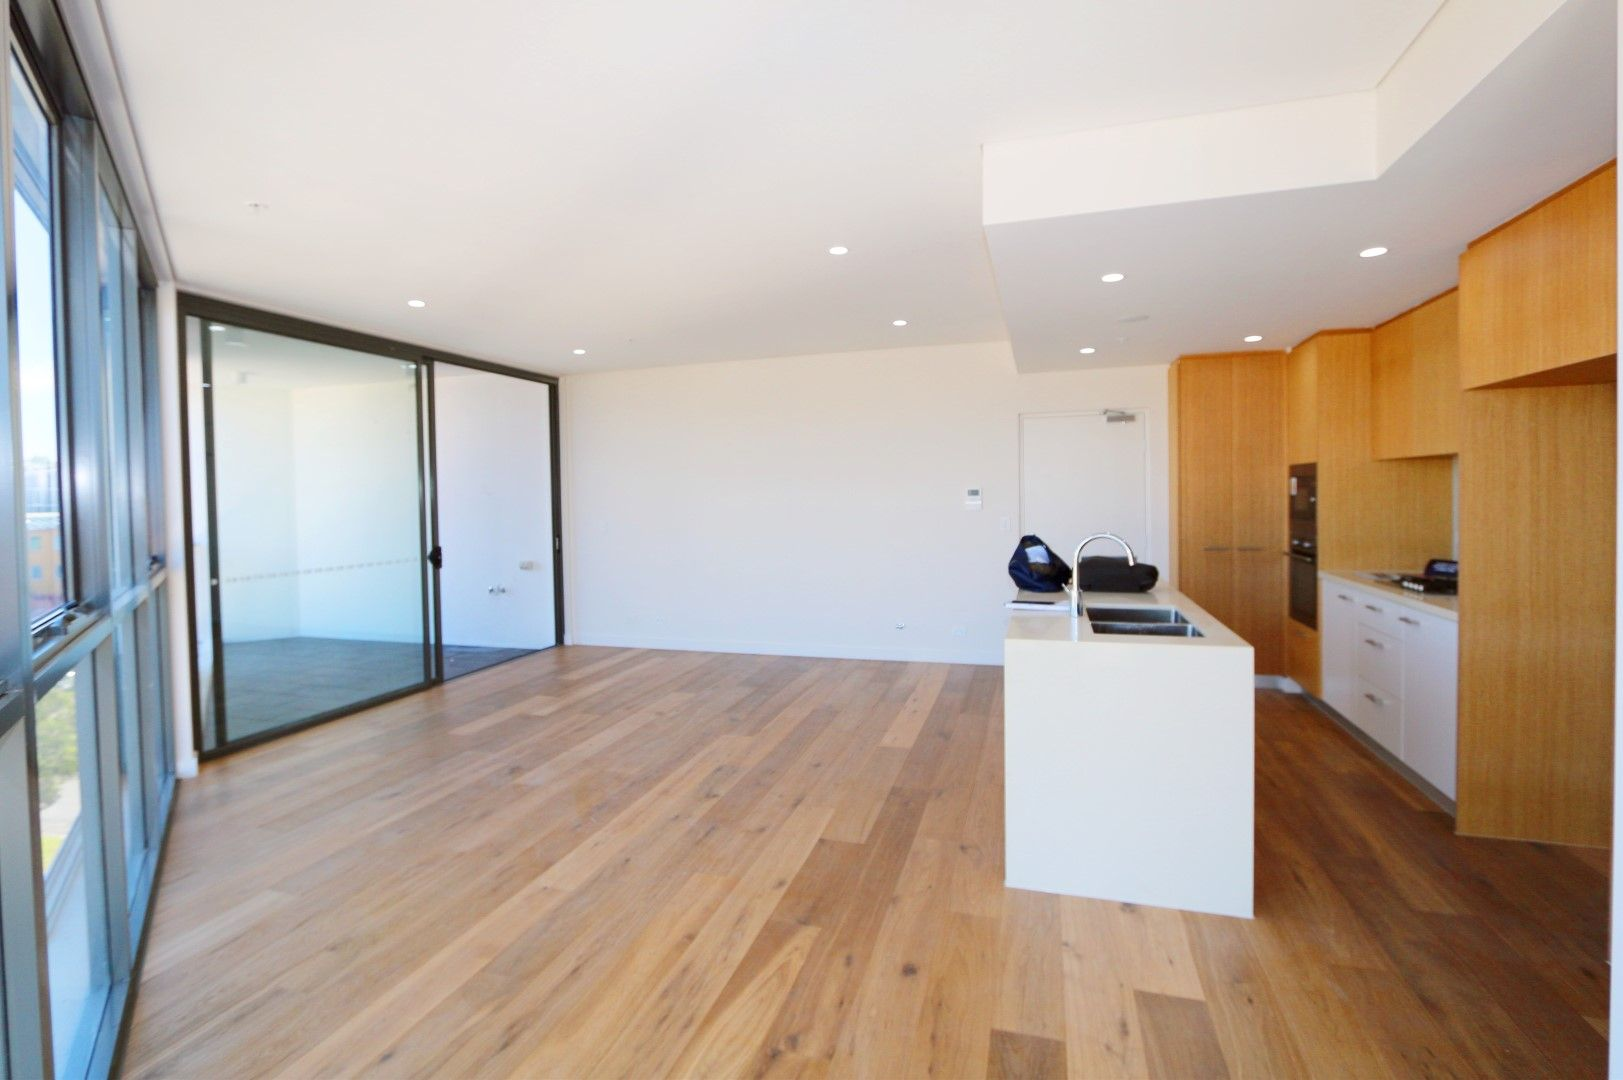 2 bedrooms Apartment / Unit / Flat in 508/1 Pottery Lane LANE COVE NSW, 2066